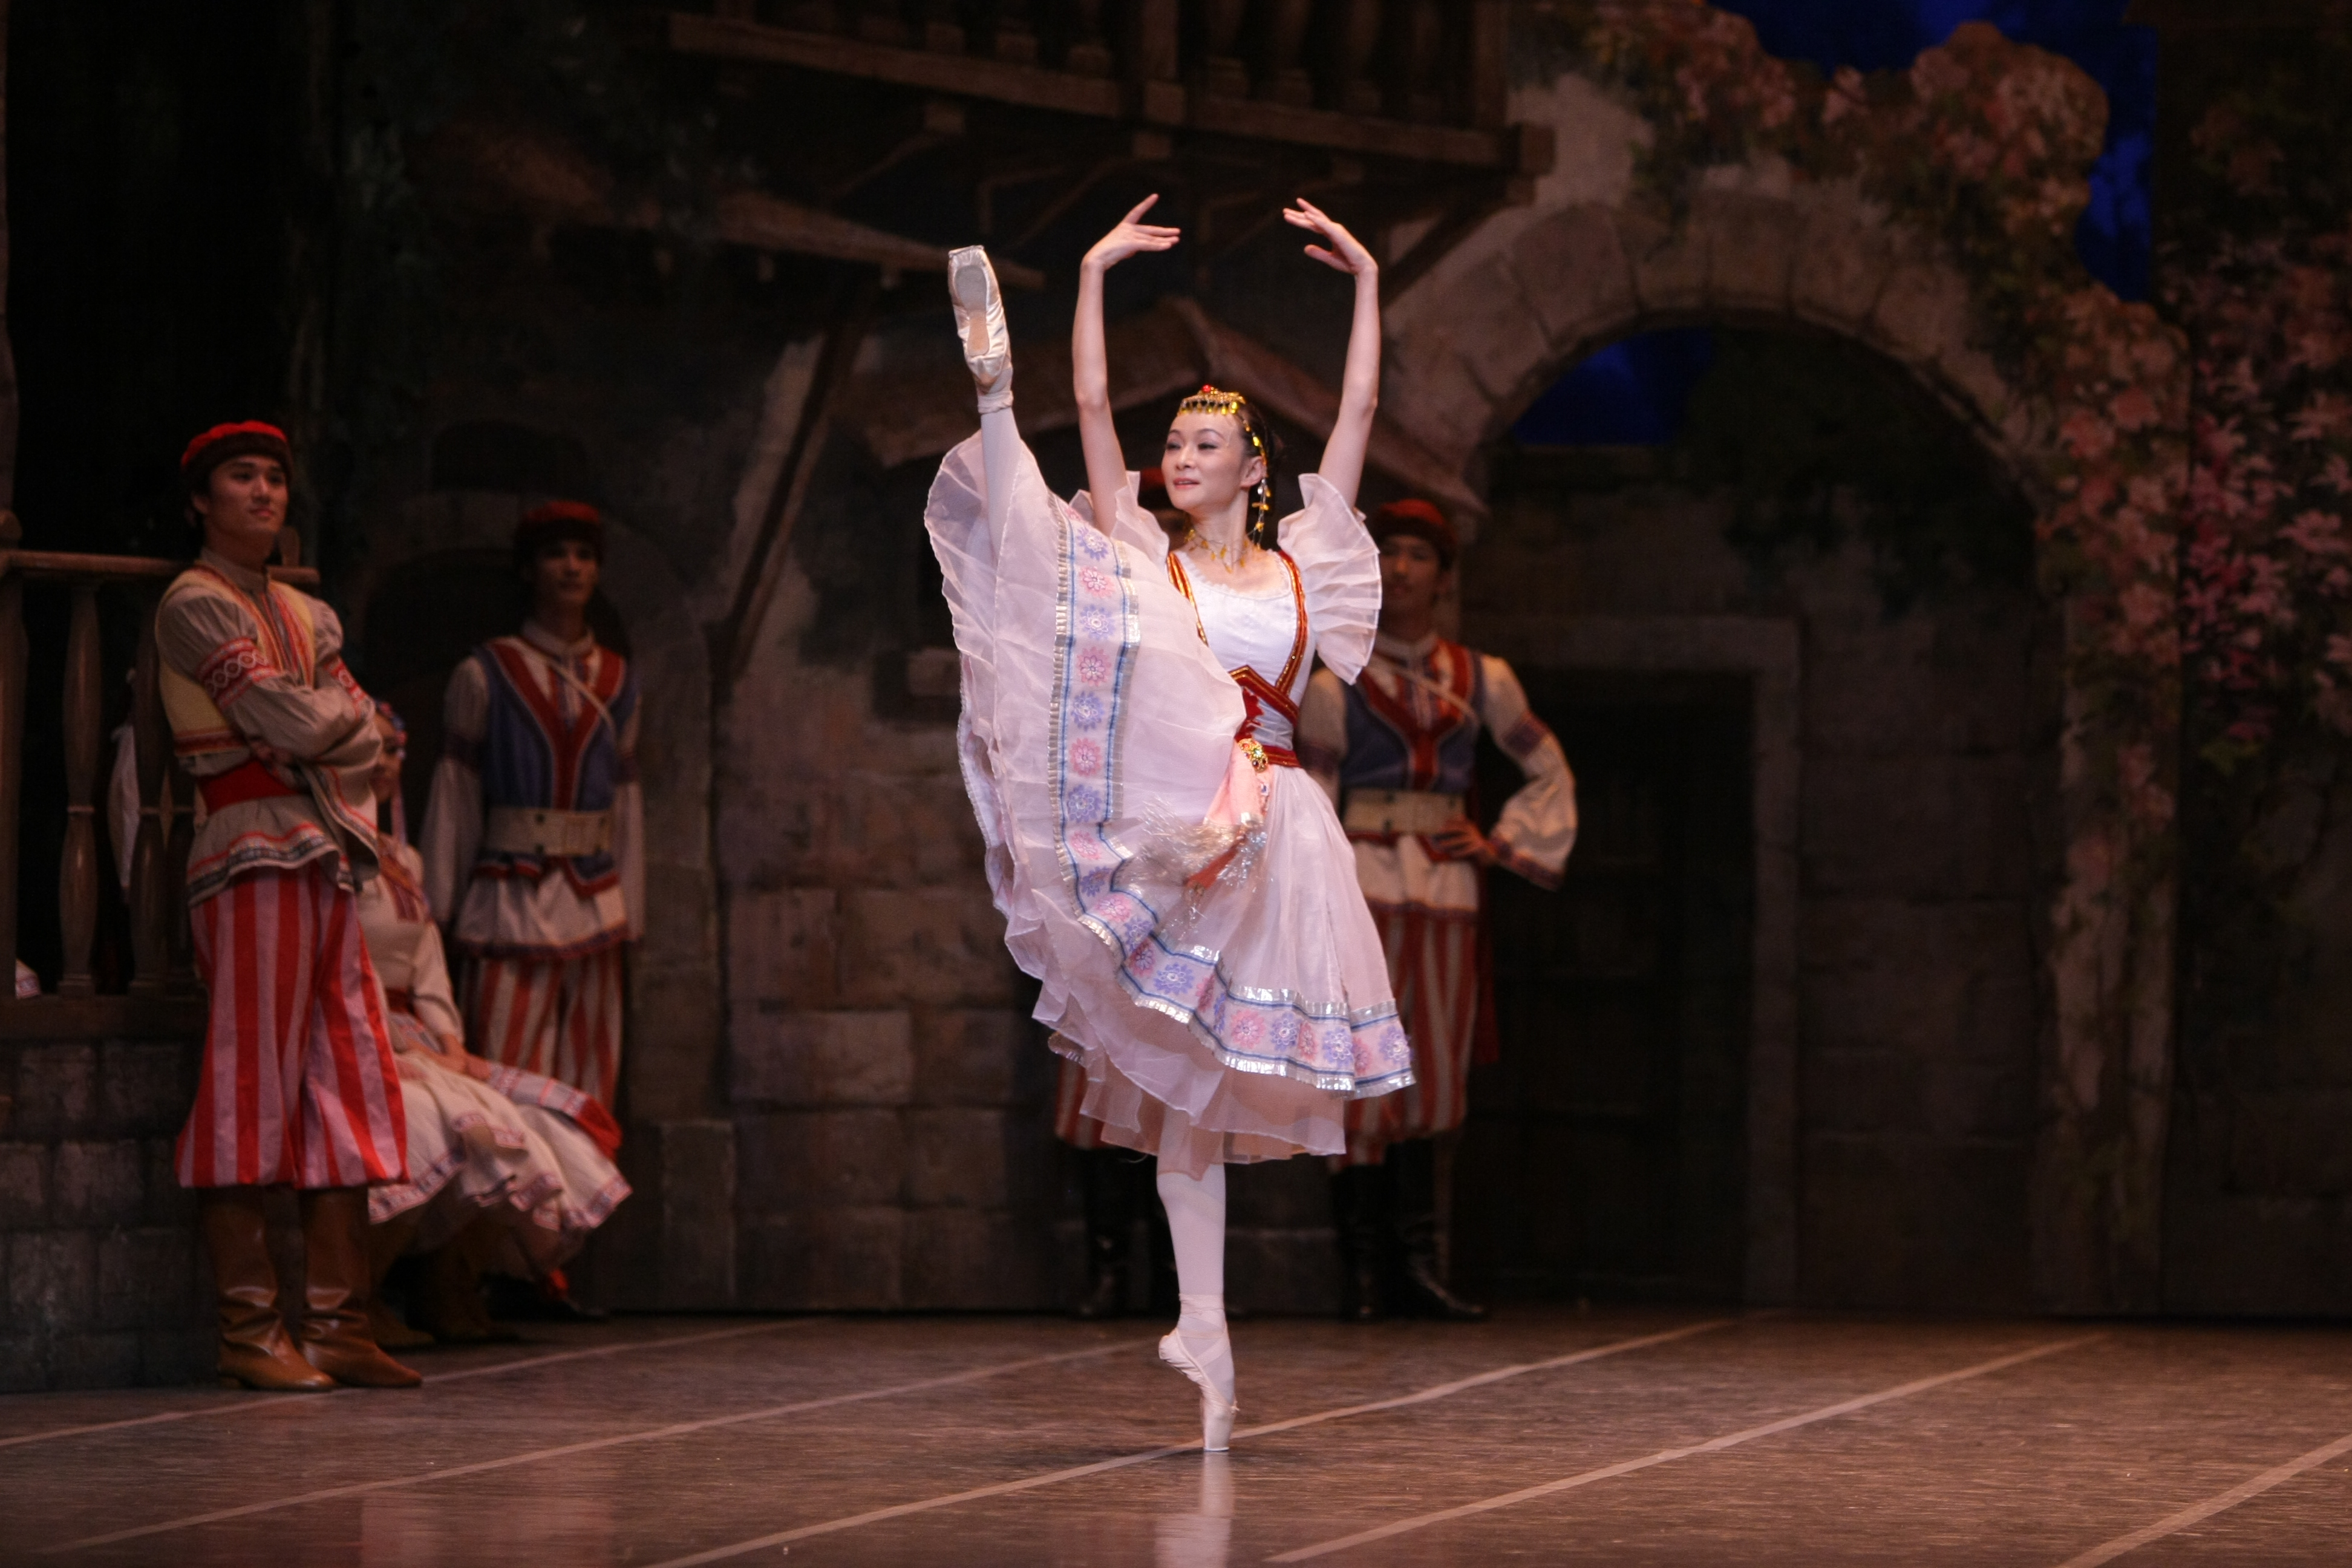 FAN Xiaofeng dances as Swanhilda in the village in the kingdom of Galicia. Courtesy of Ballet de Shanghai.